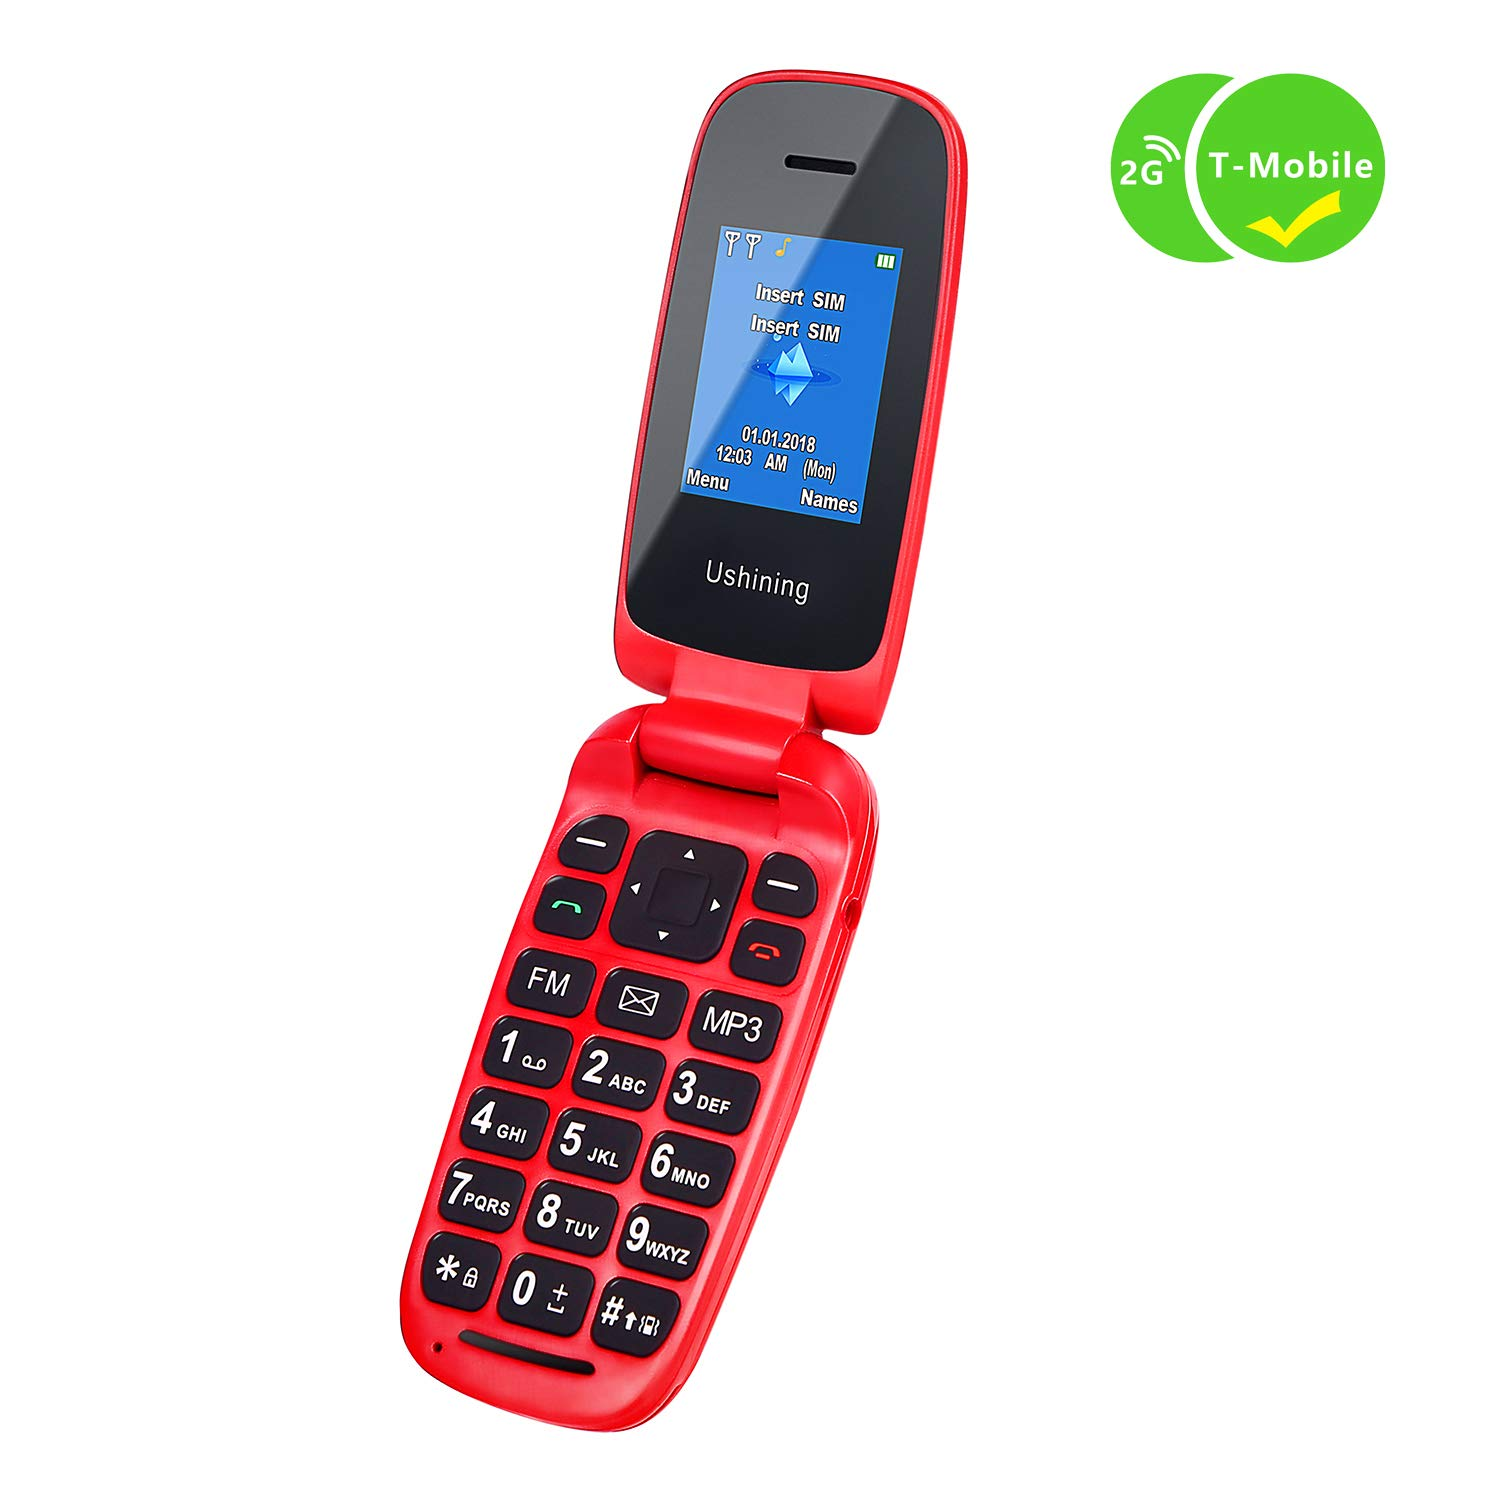 Ushining Unlocked Flip Cell Phone for Seniors,Easy-to-Use,Long Standby time,T-Mobile Card Suitable (Red) by USHINING (Image #2)